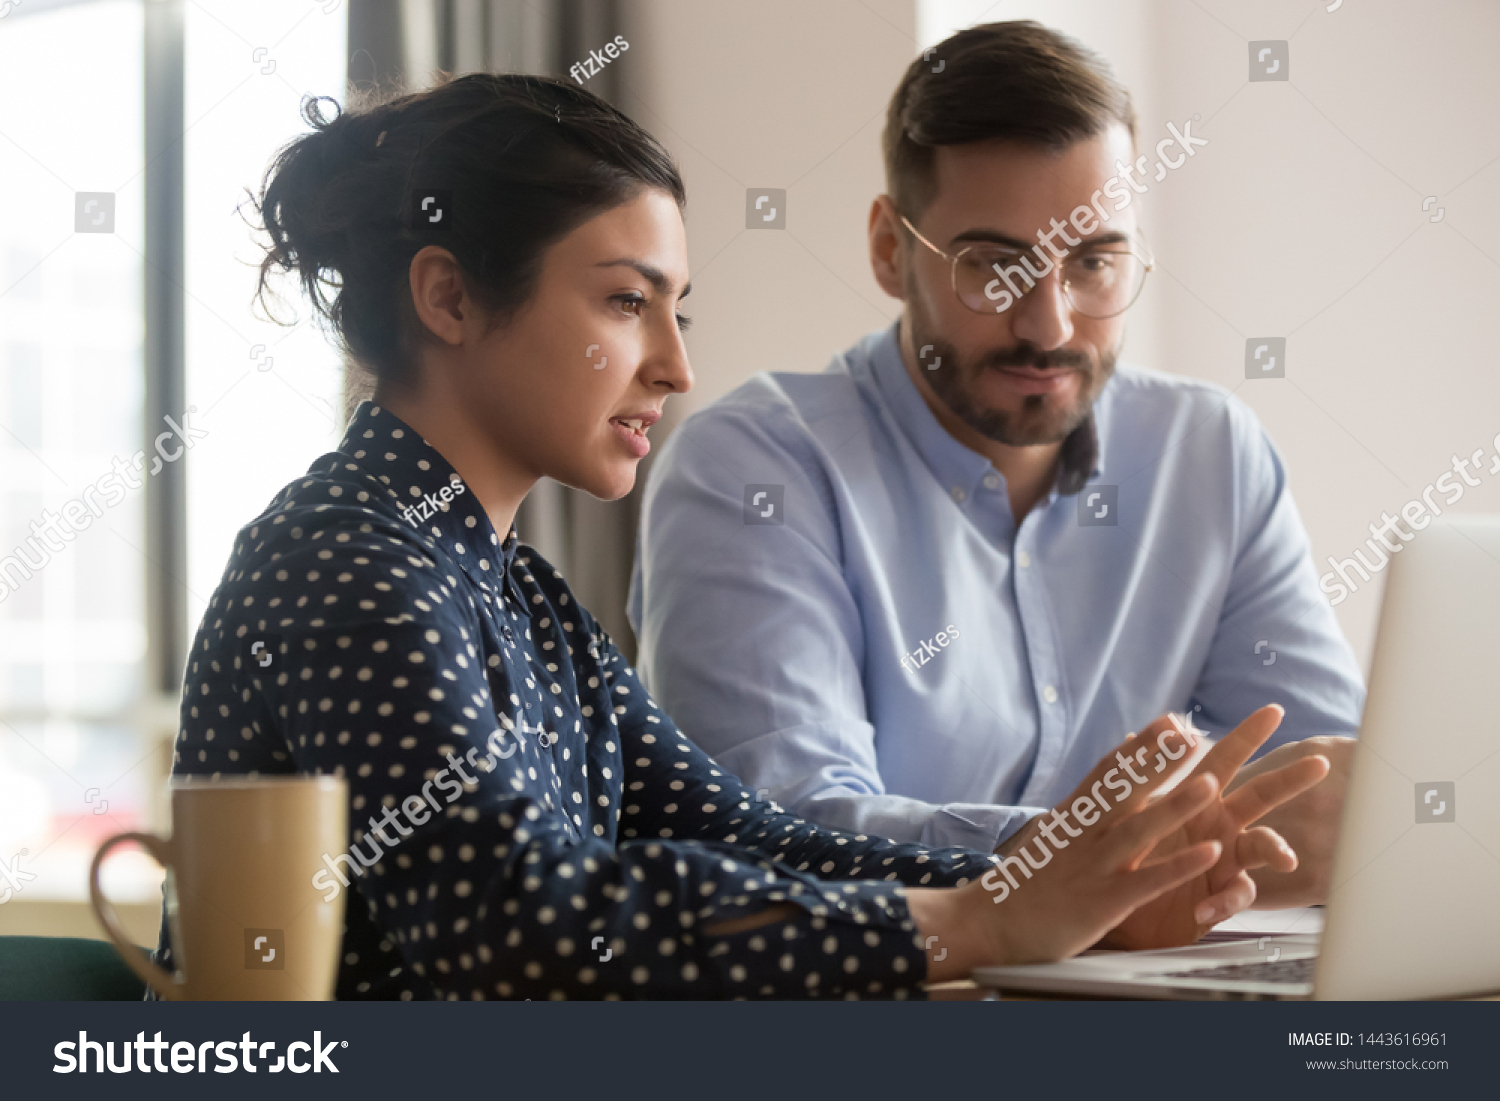 Focused male intern listening to serious indian business woman mentor teacher explaining online strategy looking at laptop computer teach trainee training new worker learning new skill at workplace #1443616961